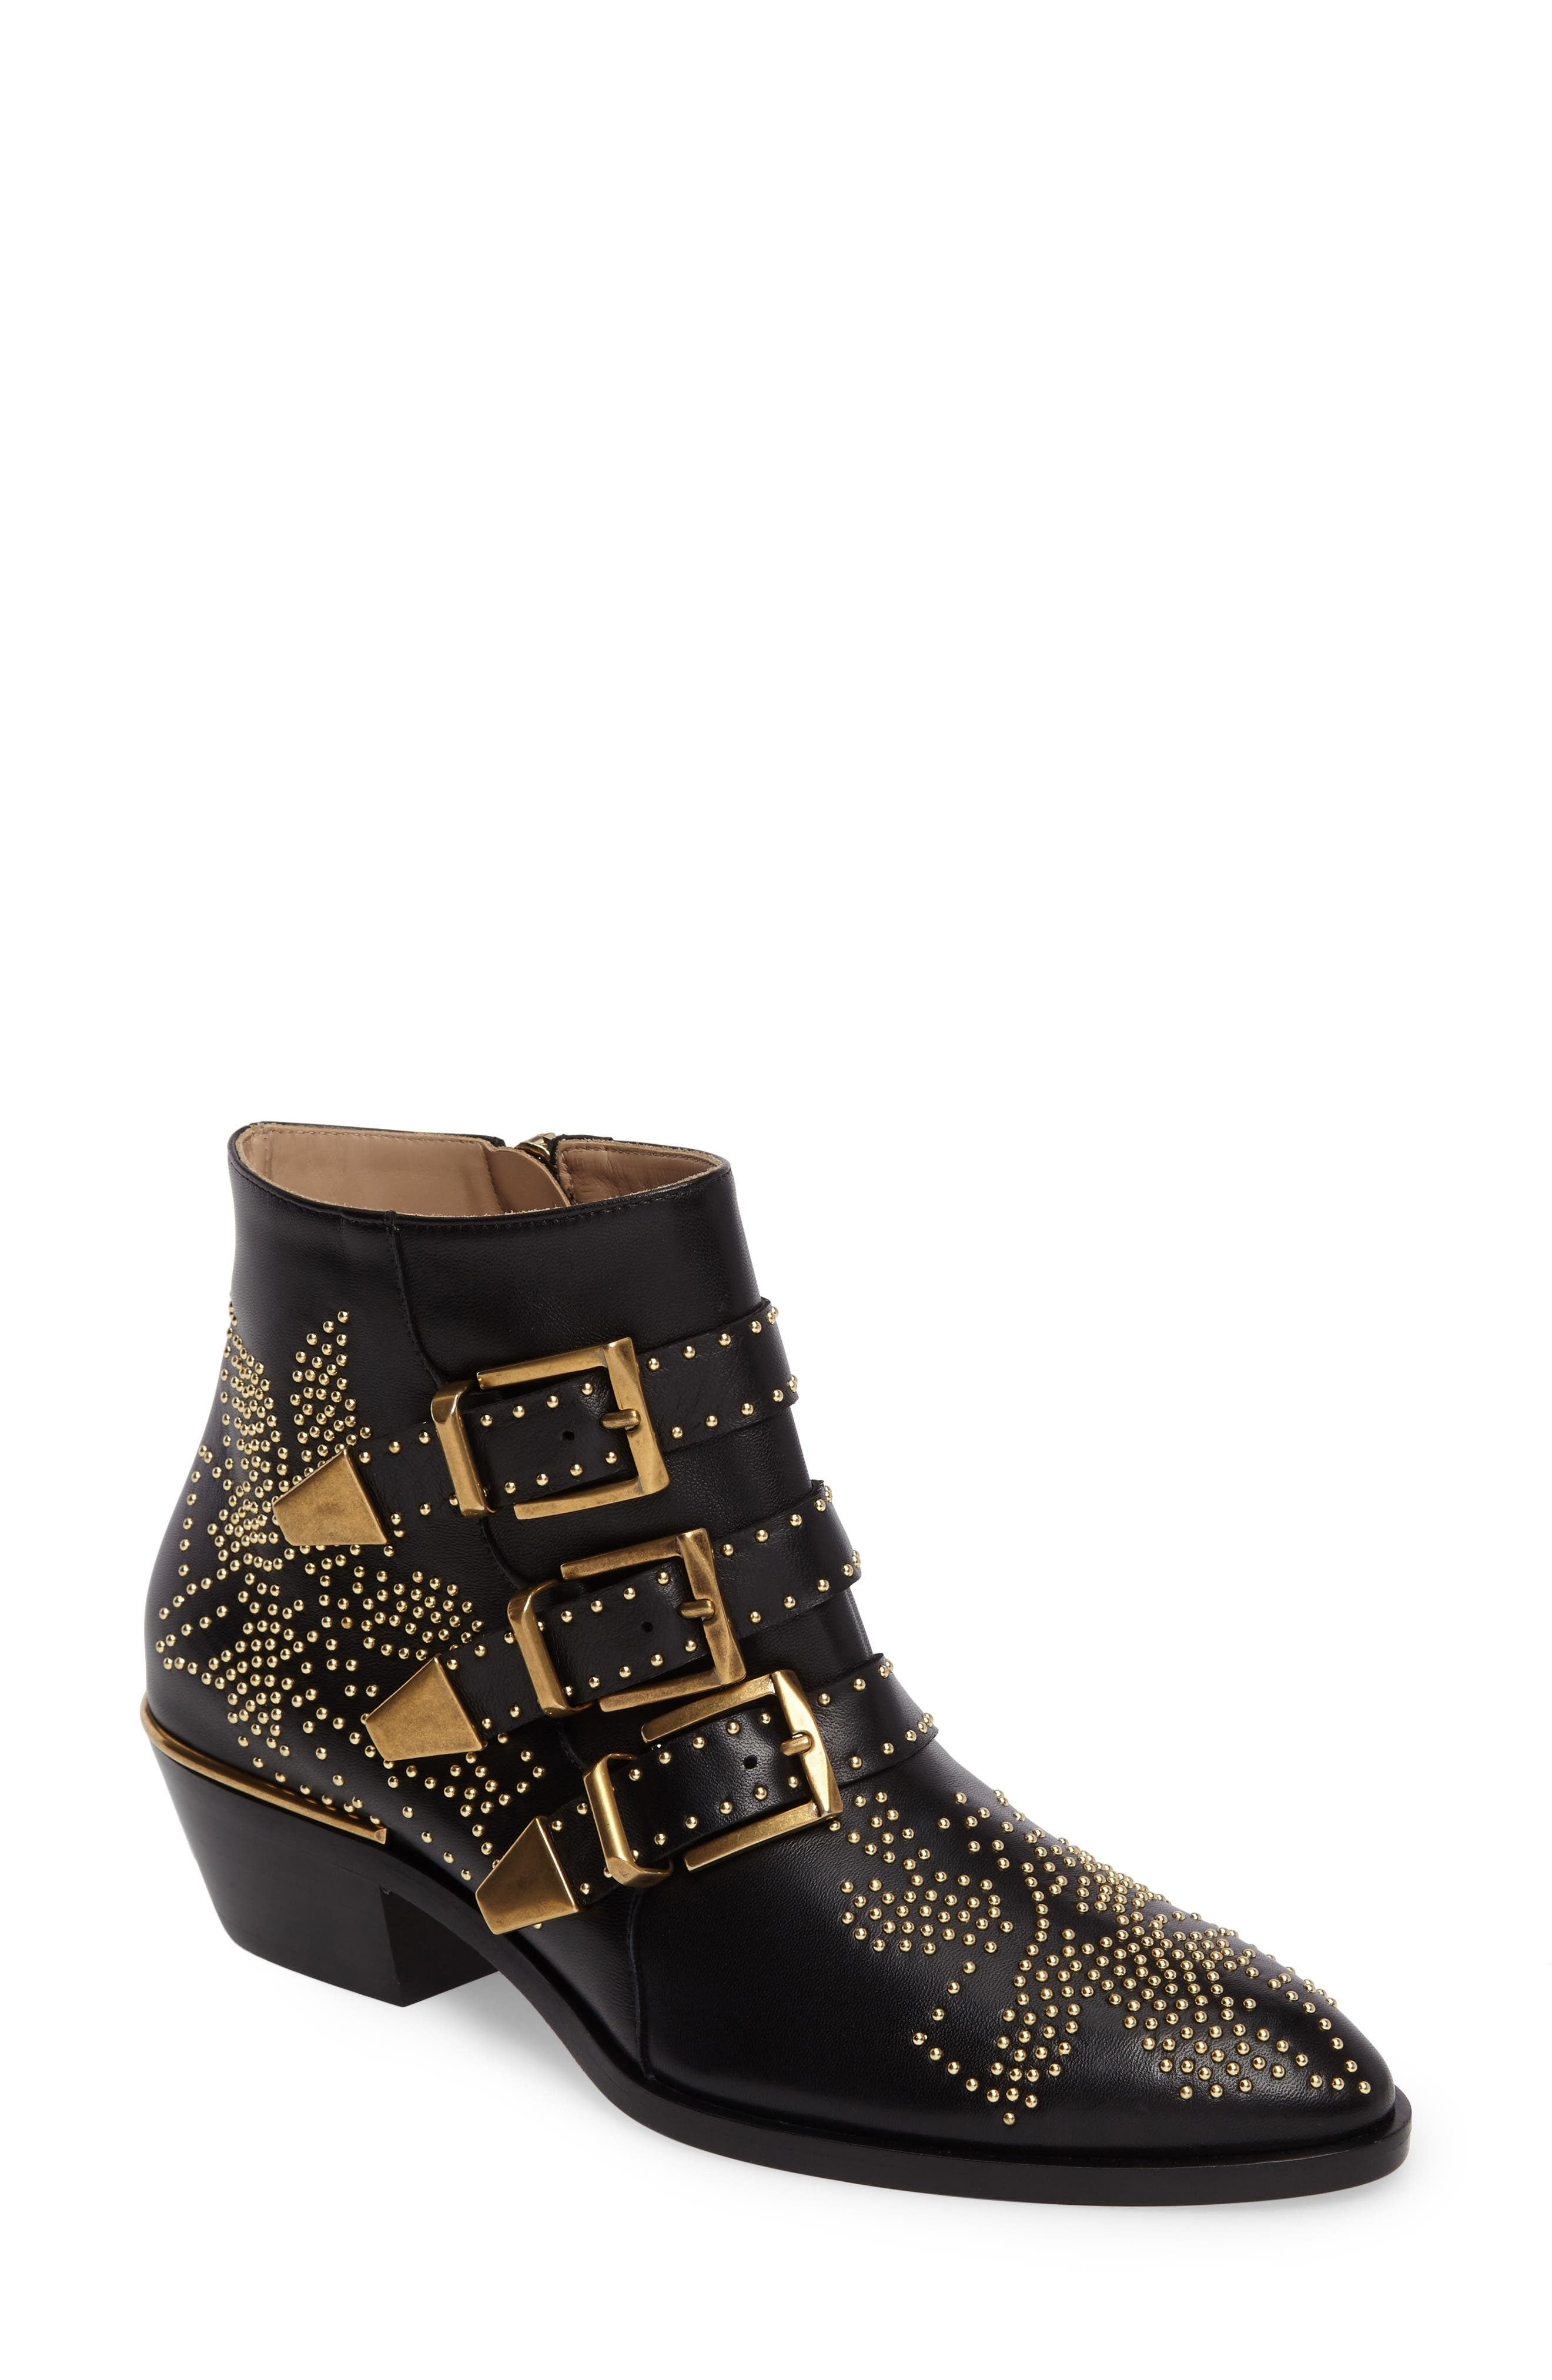 CHLOÉ Susanna Stud Buckle Bootie, Main, color, BLACK GOLD LEATHER